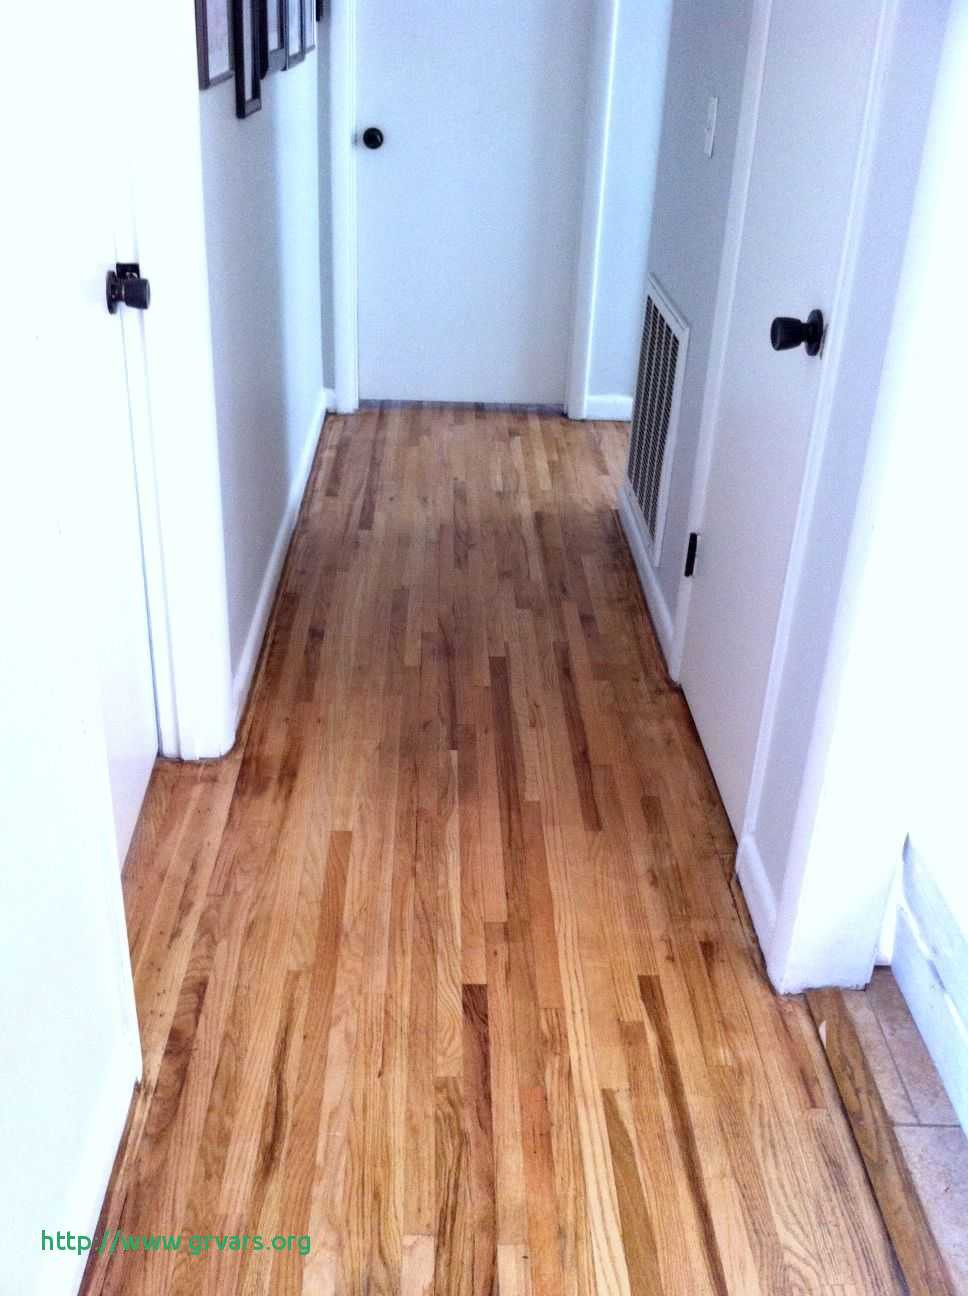 hardwood floor mop lowes of lowes flooring special frais lowes home plans free floor plans in lowes flooring special nouveau this is what happens when you don t listen to the folks